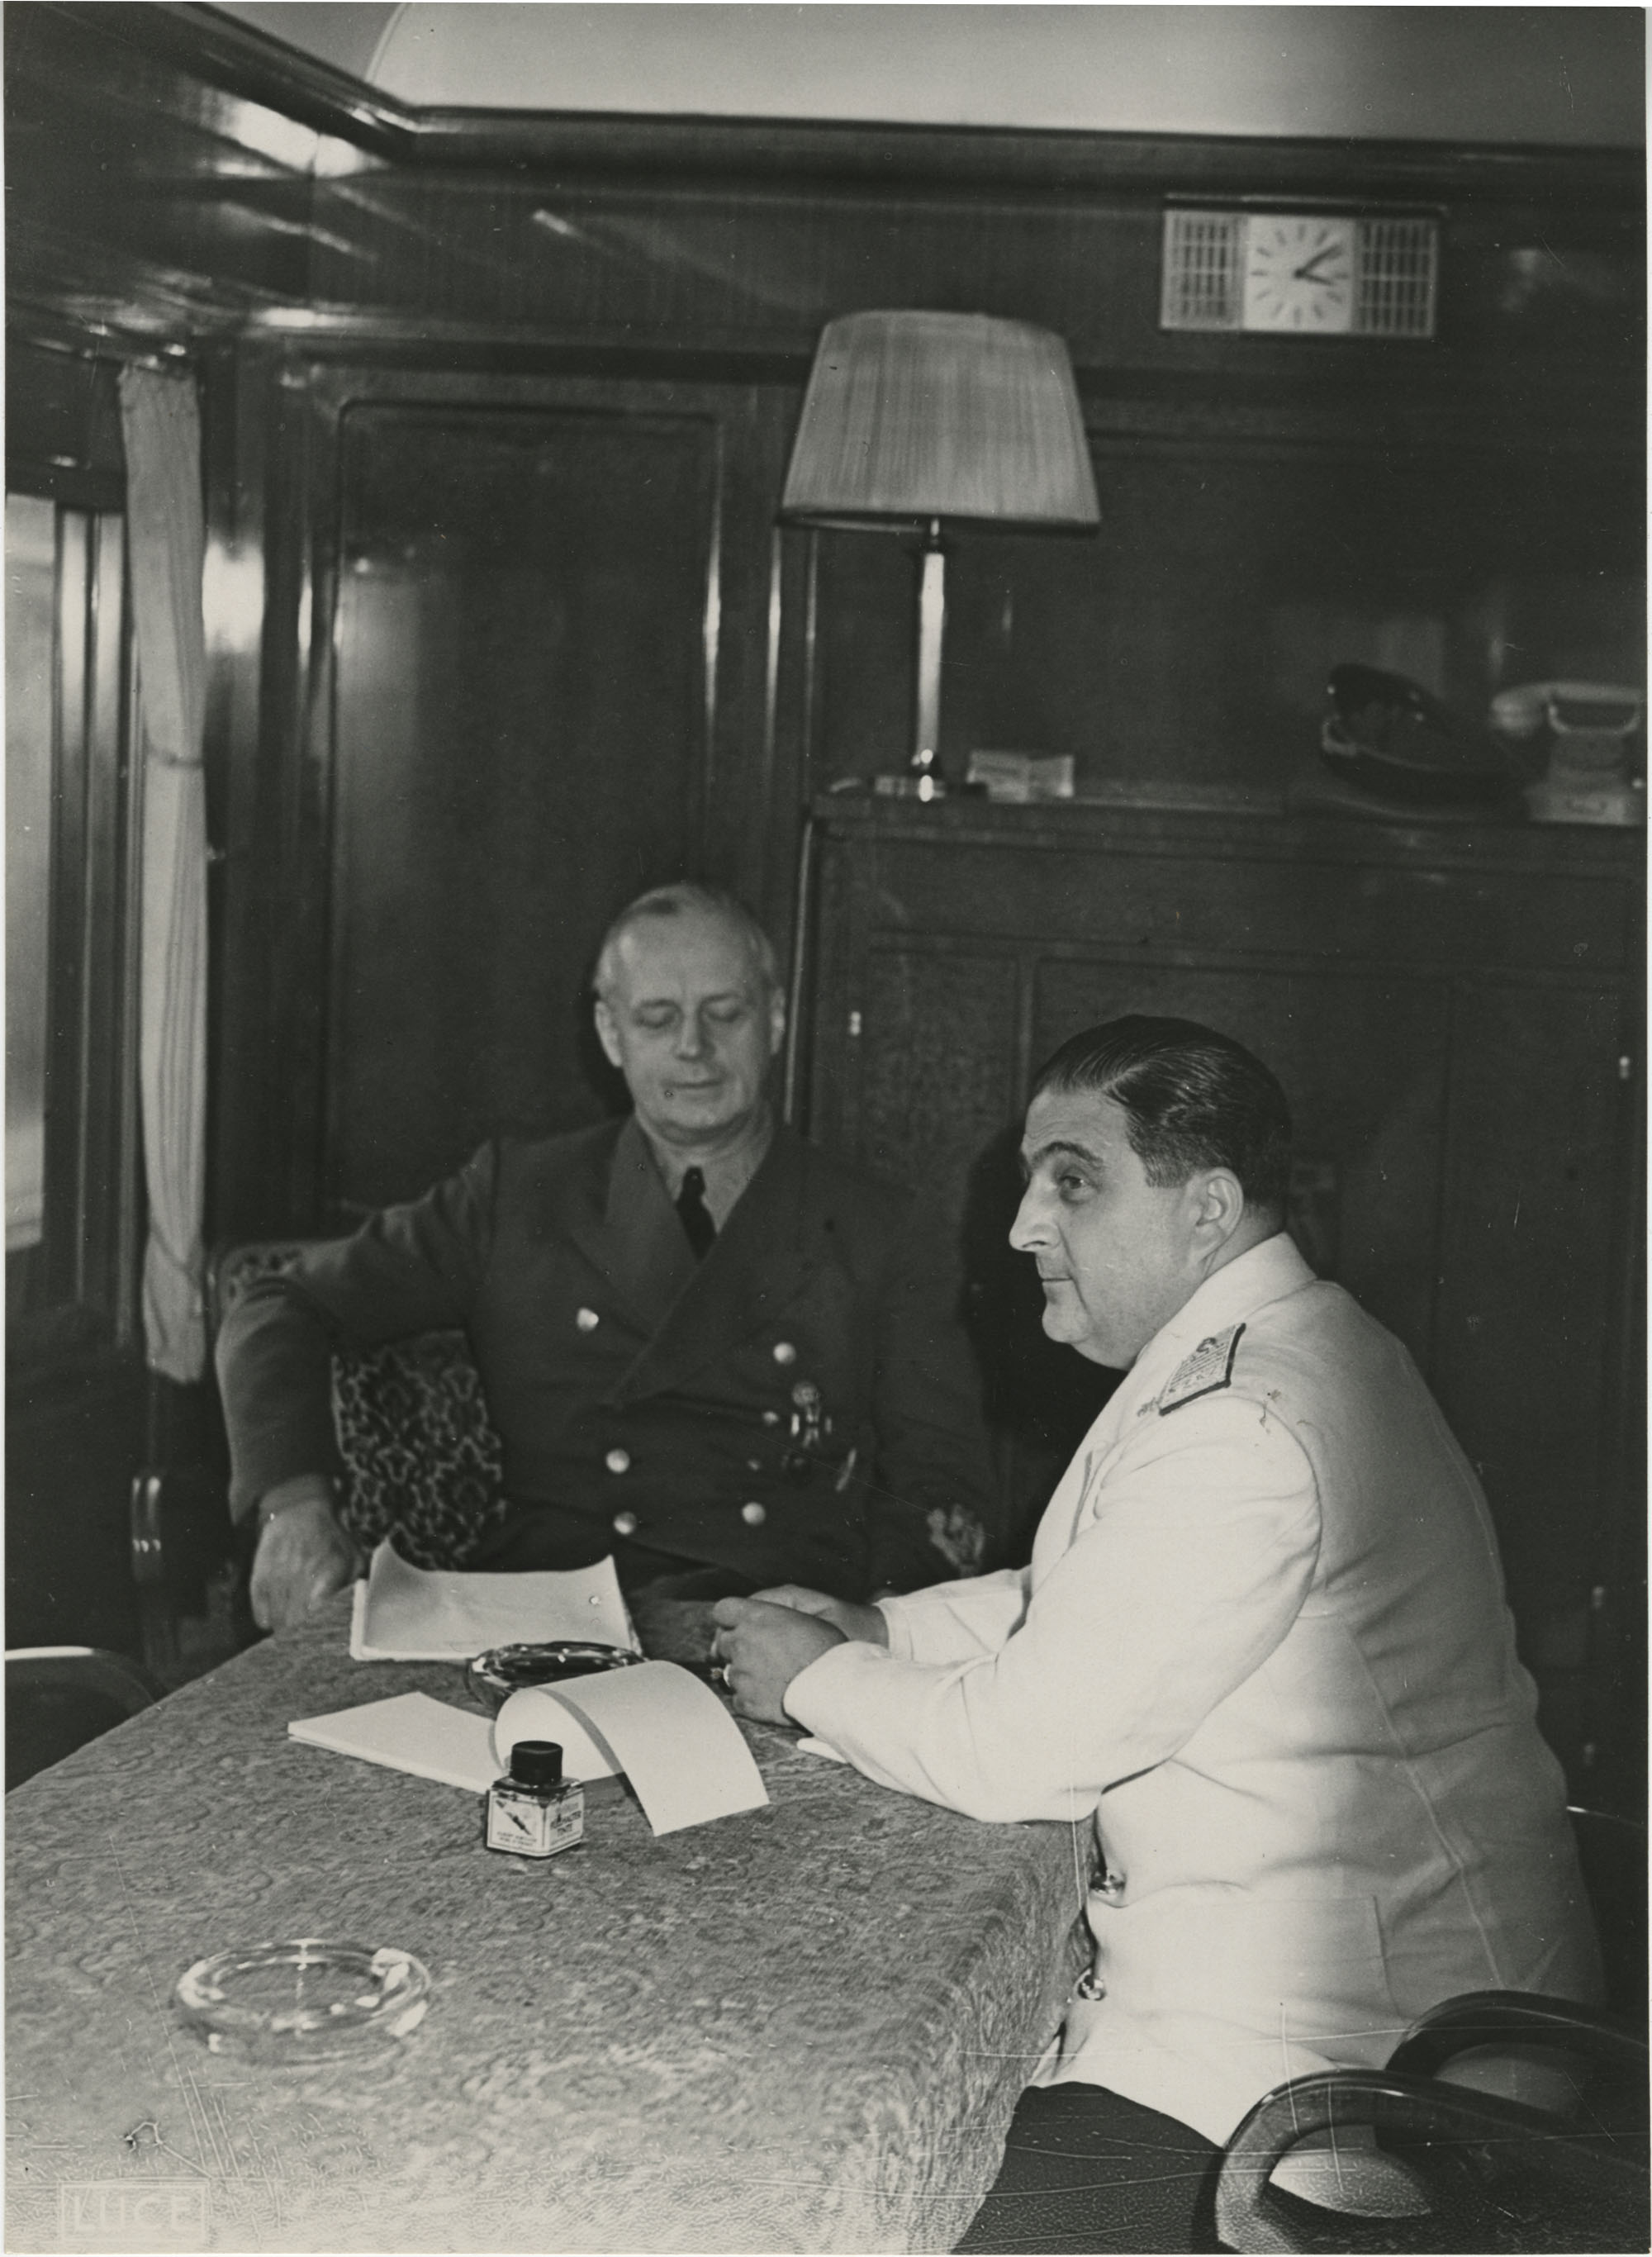 Military officials conversing on a train, Photograph 1